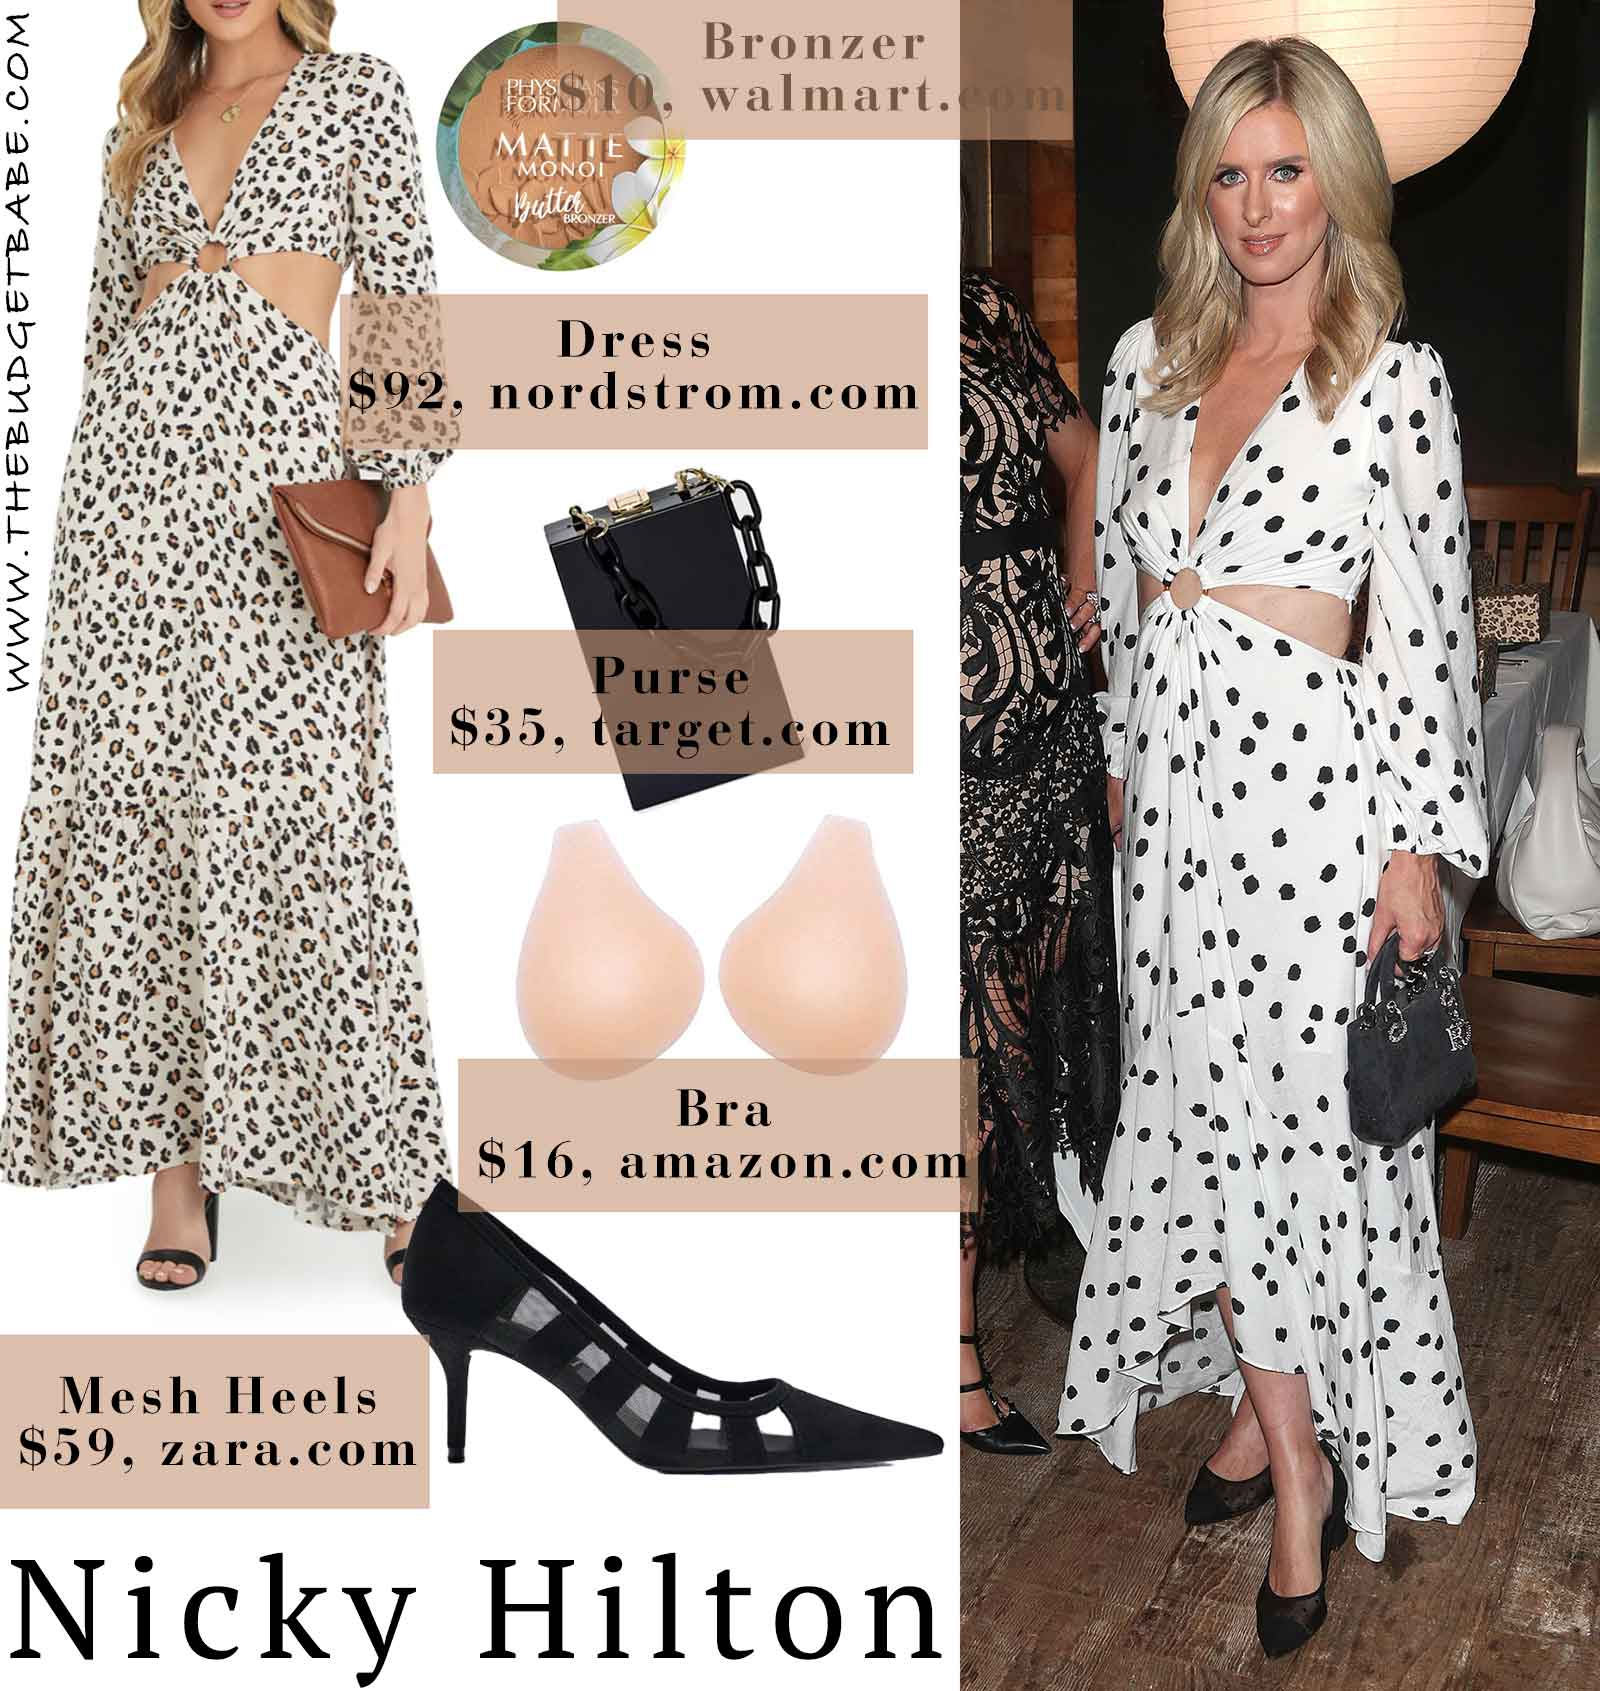 Nicky Hilton glows in a cut out maxi dress at her French Sole party.